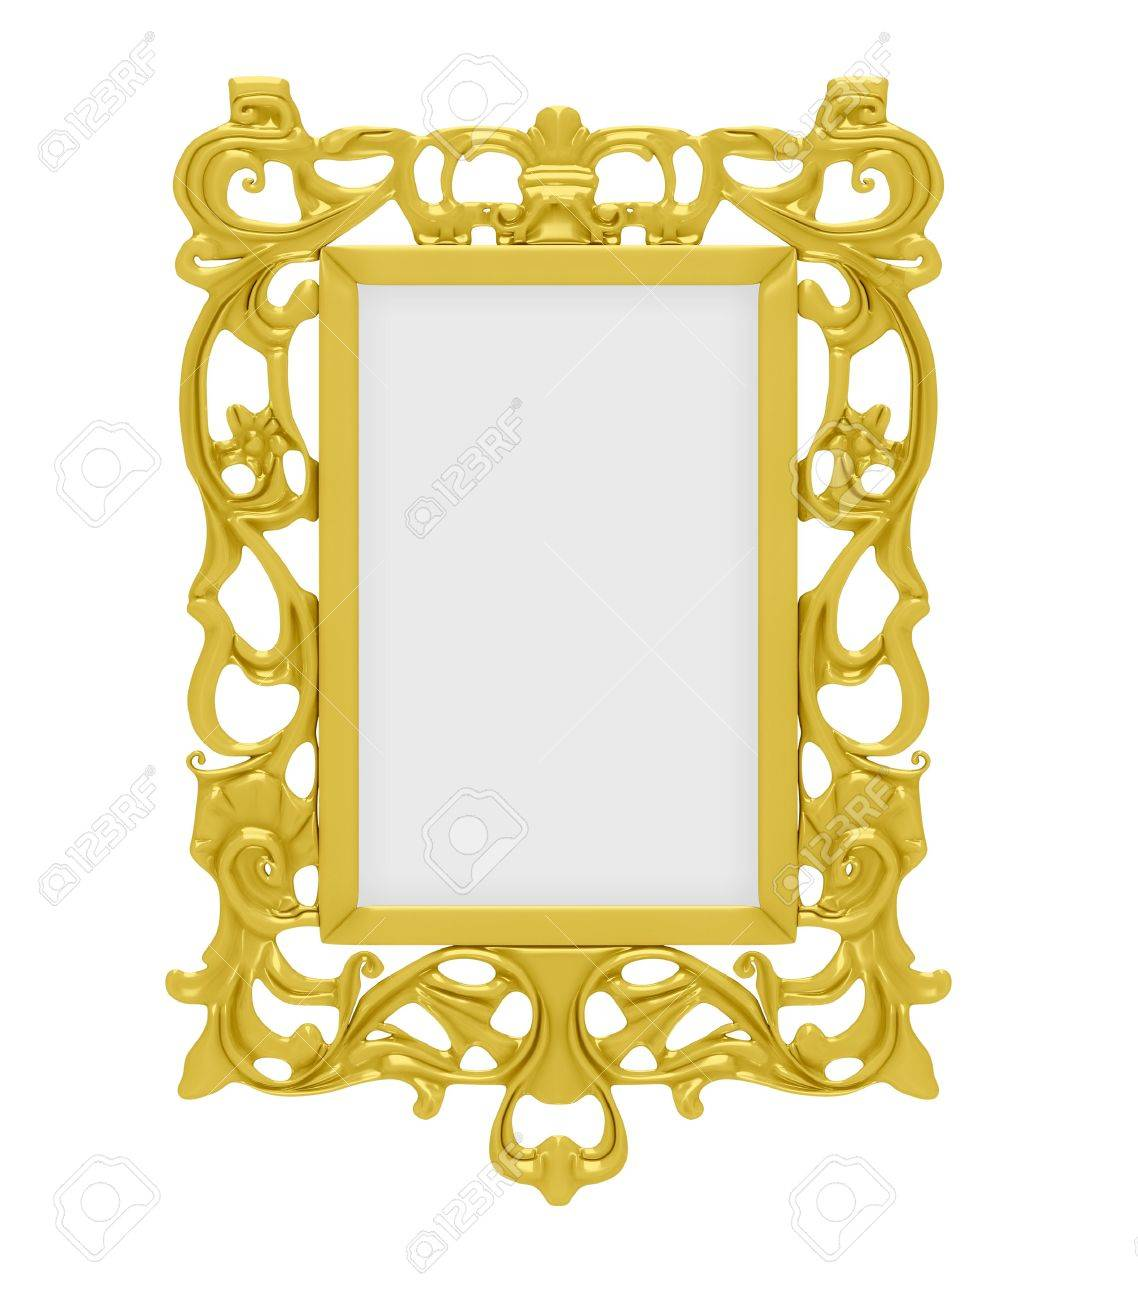 Isolated decorative golden frame over white background Stock Photo - 6592915